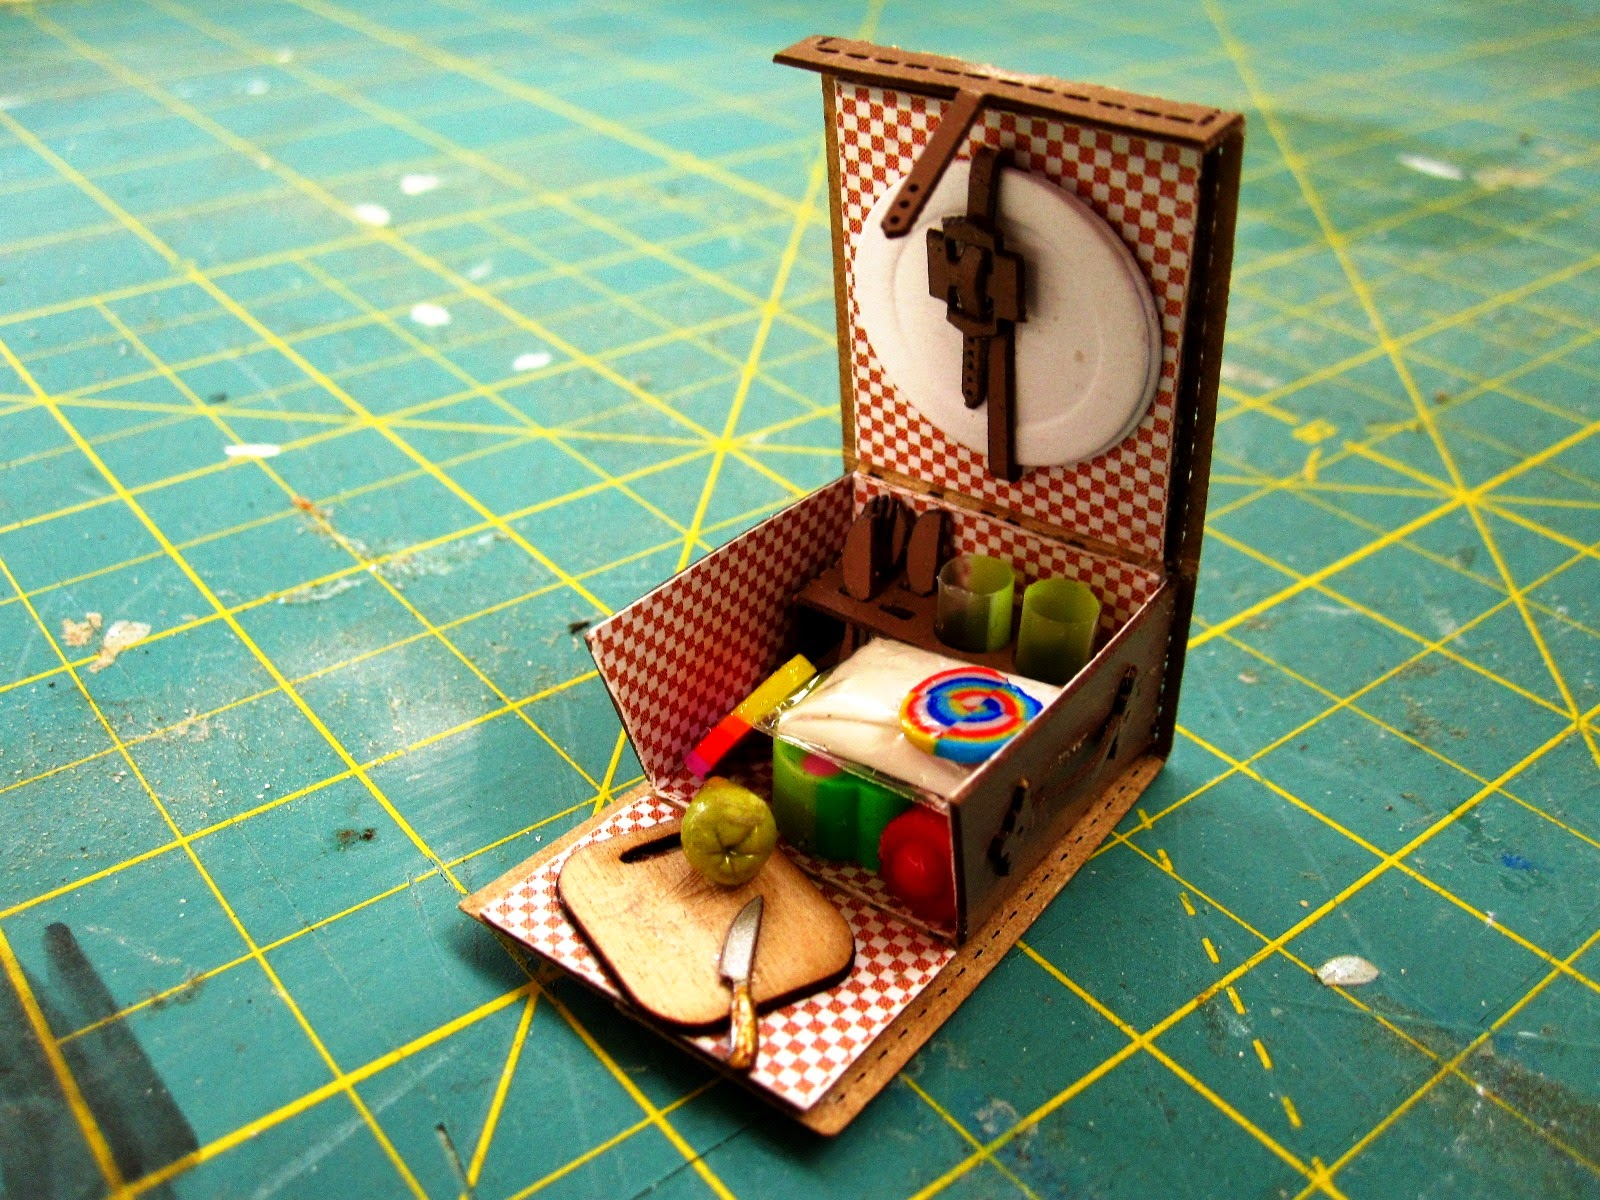 Miniature picnic basket with contents.